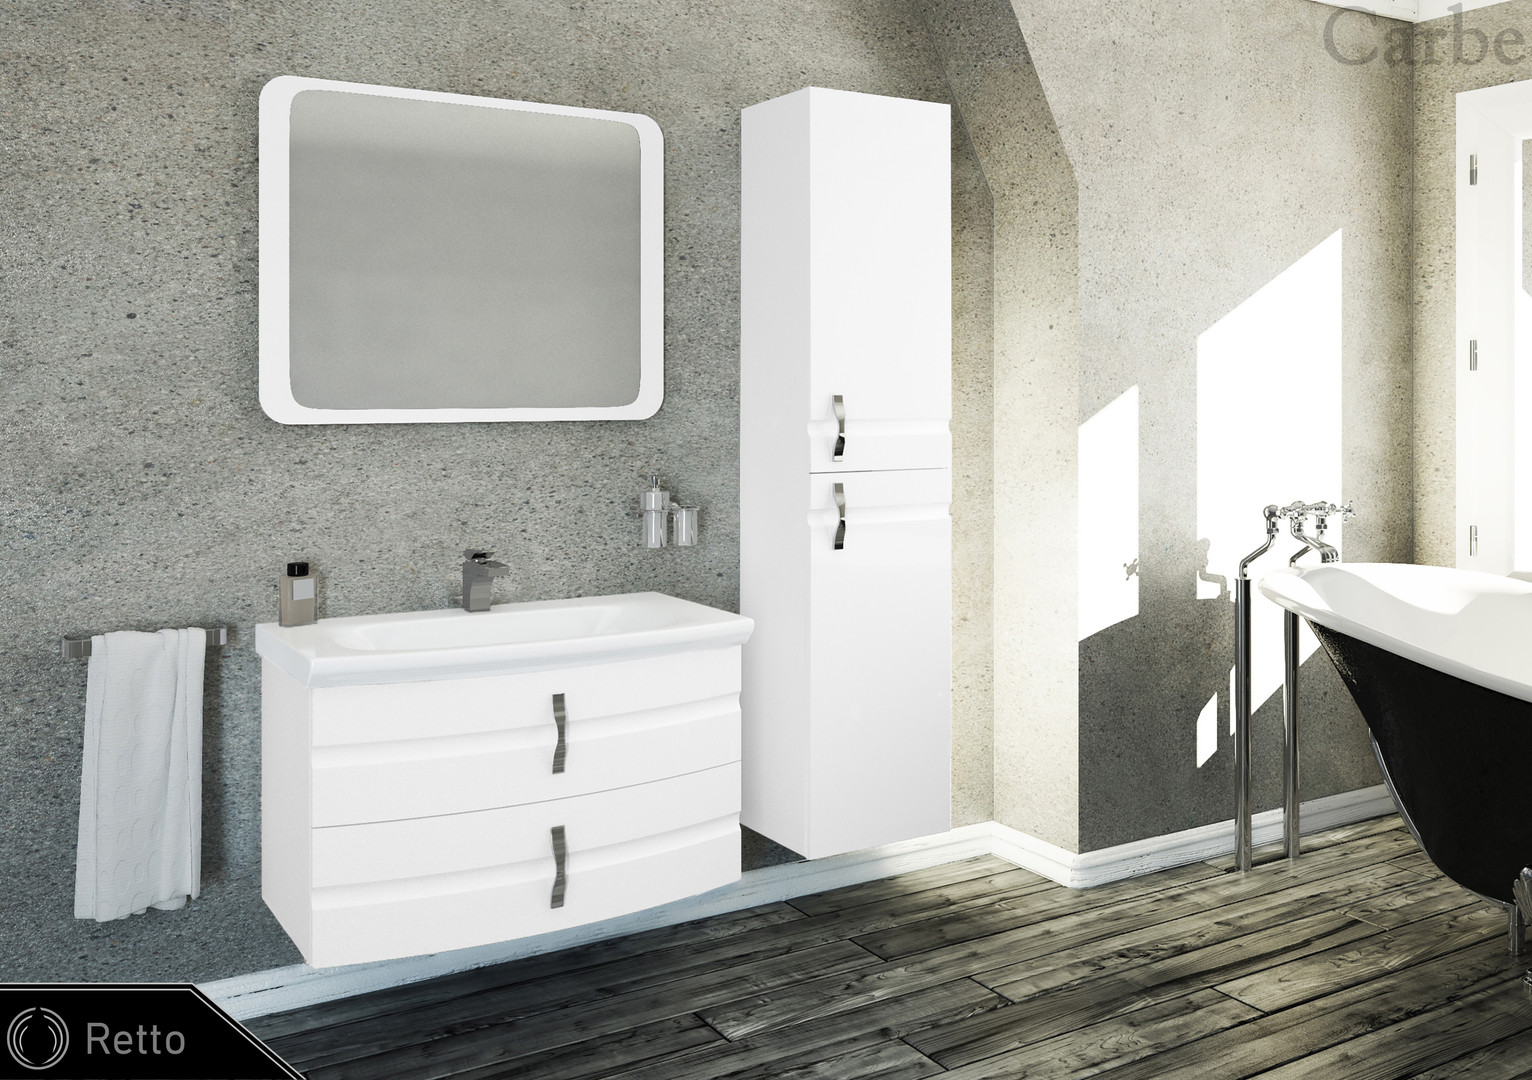 Retto - Arctic White High Gloss, Cermaic Washbasin, Soft Closing